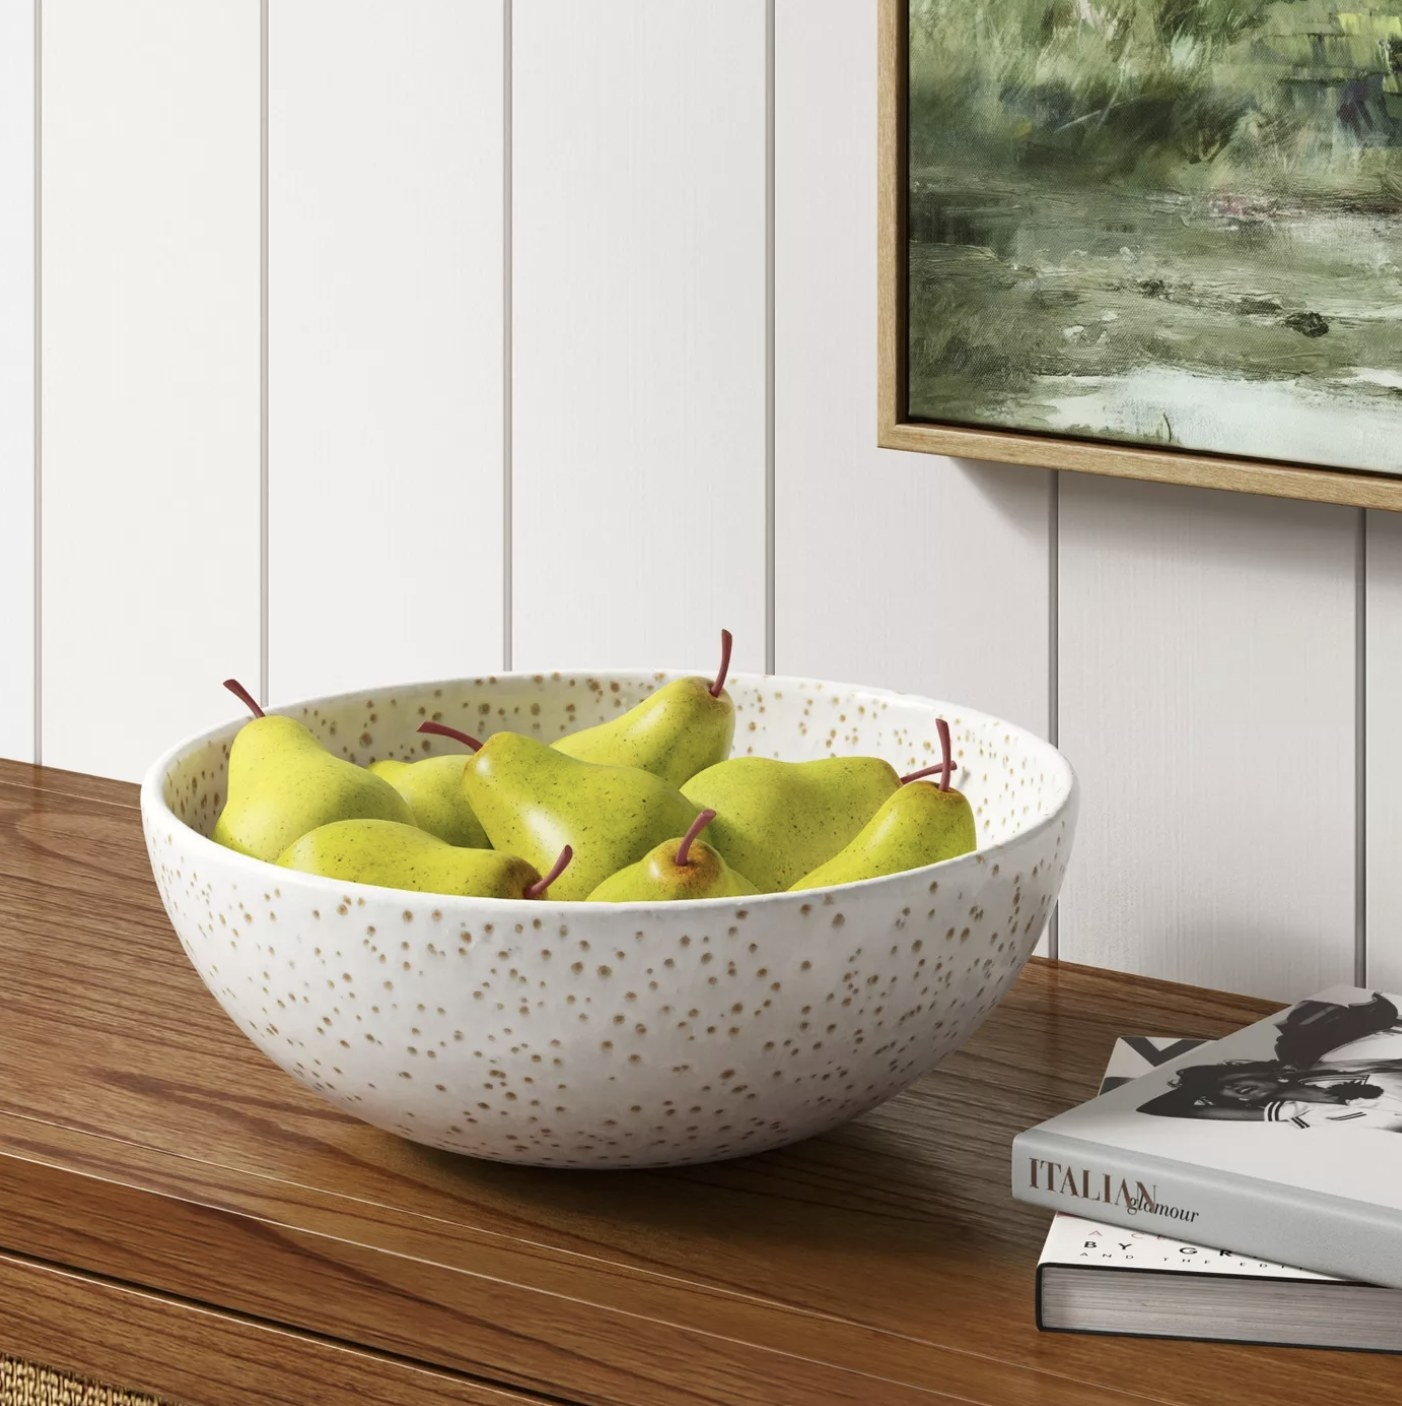 A bowl of artificial pears